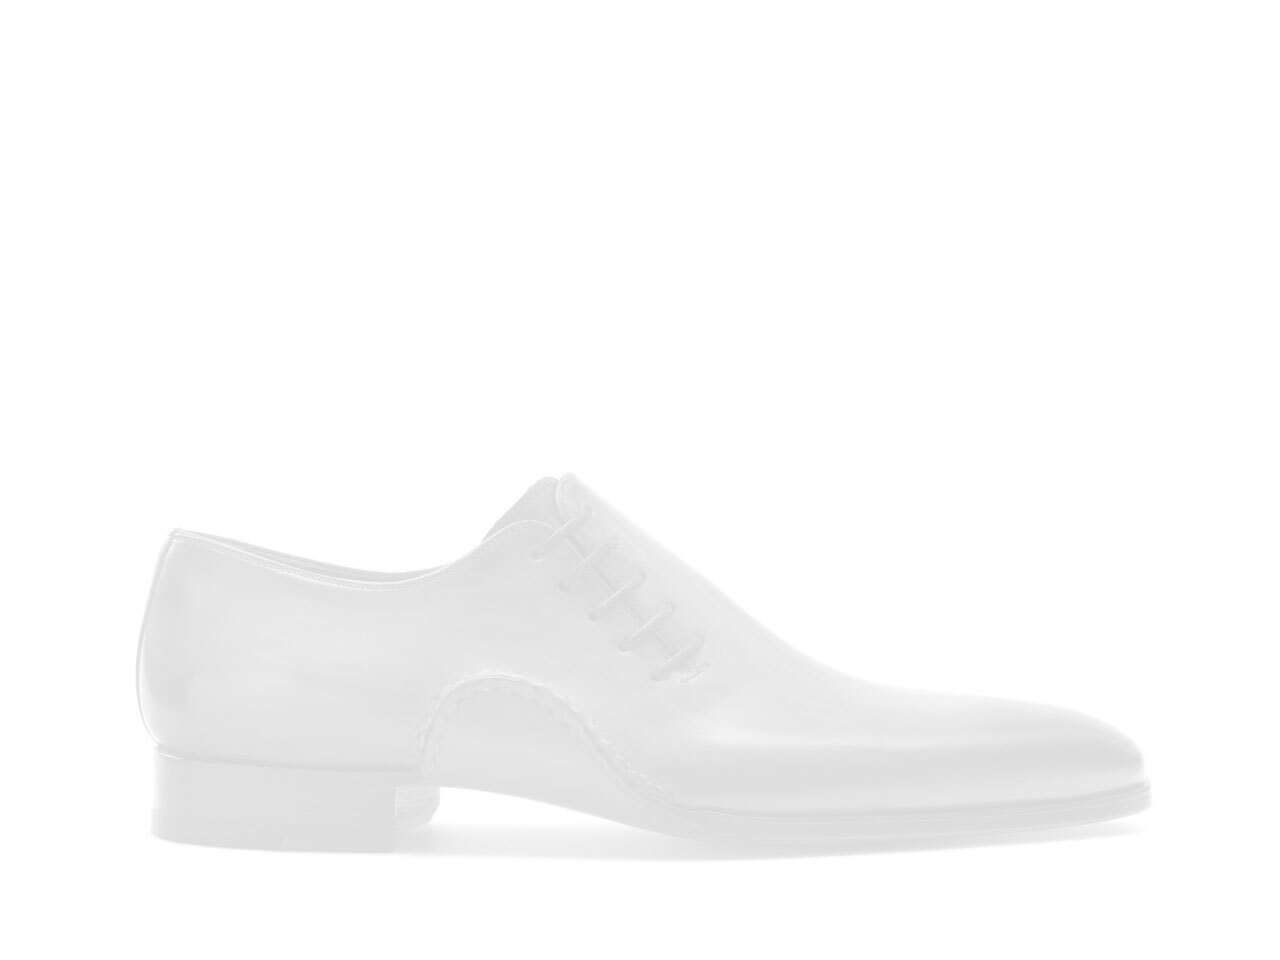 Pair of the Magnanni Reina II White and Grey Men's Sneakers